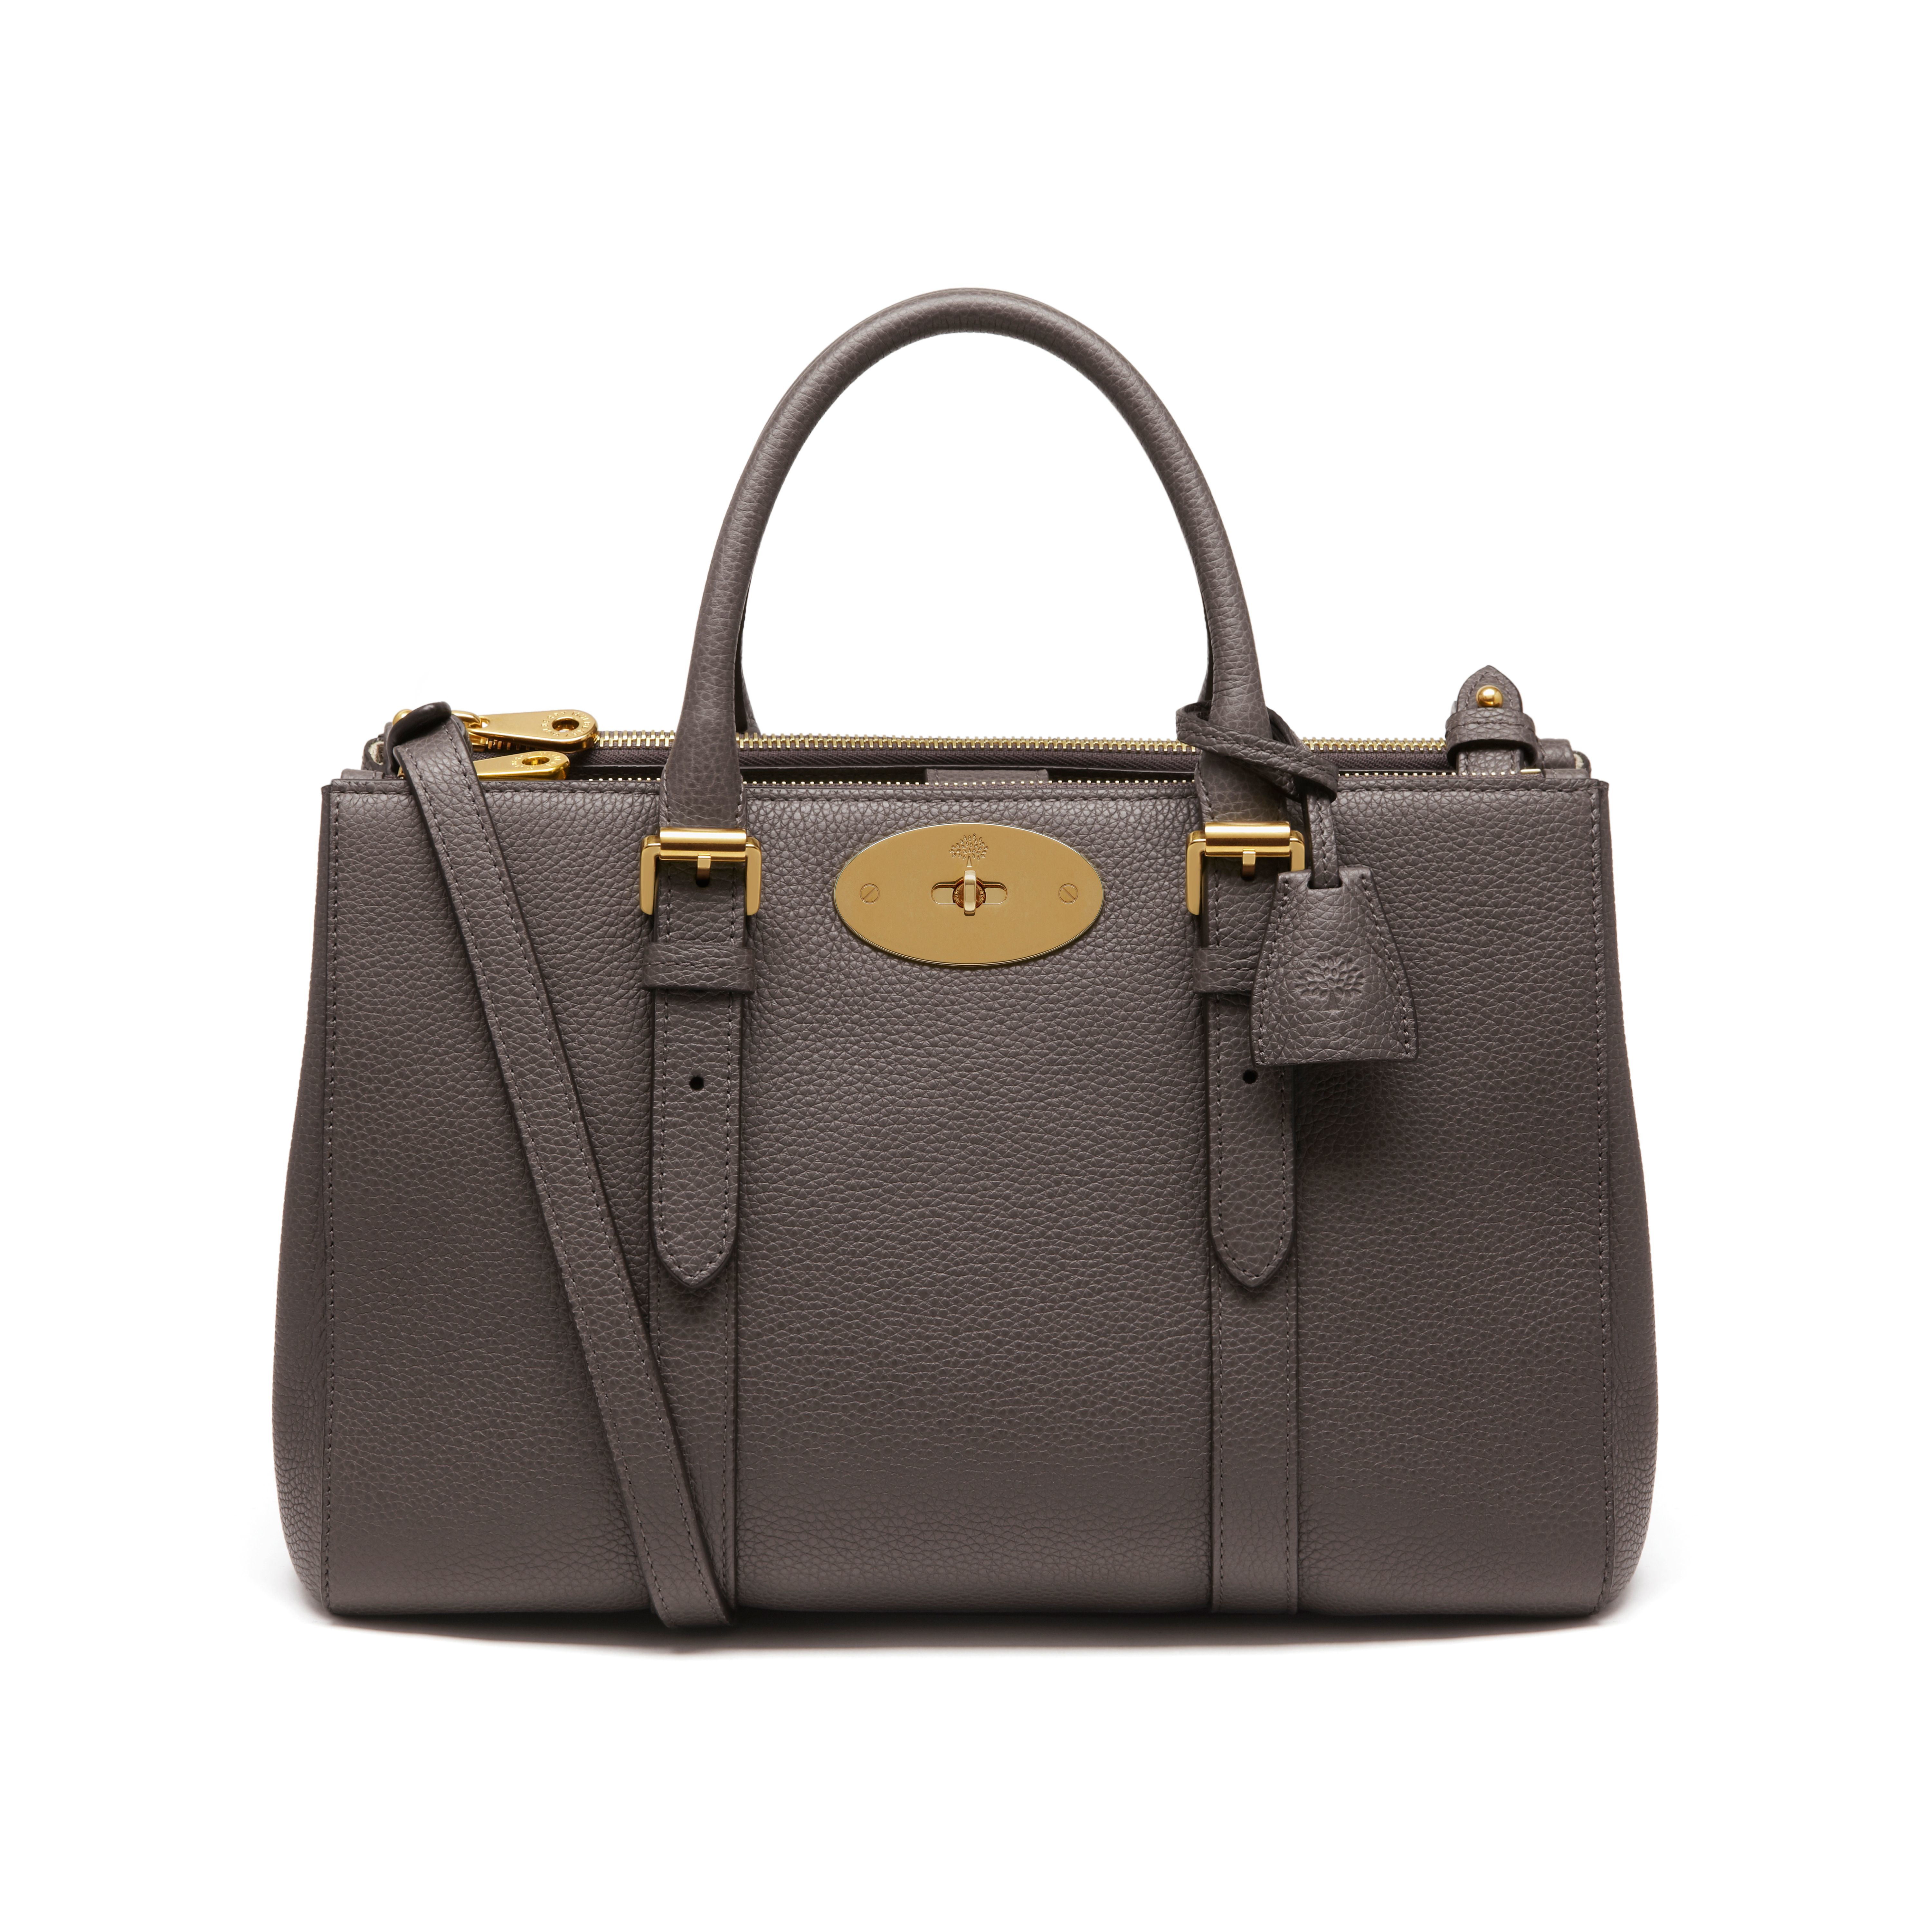 263d38812d Lyst - Mulberry Small Bayswater Leather Tote in Gray